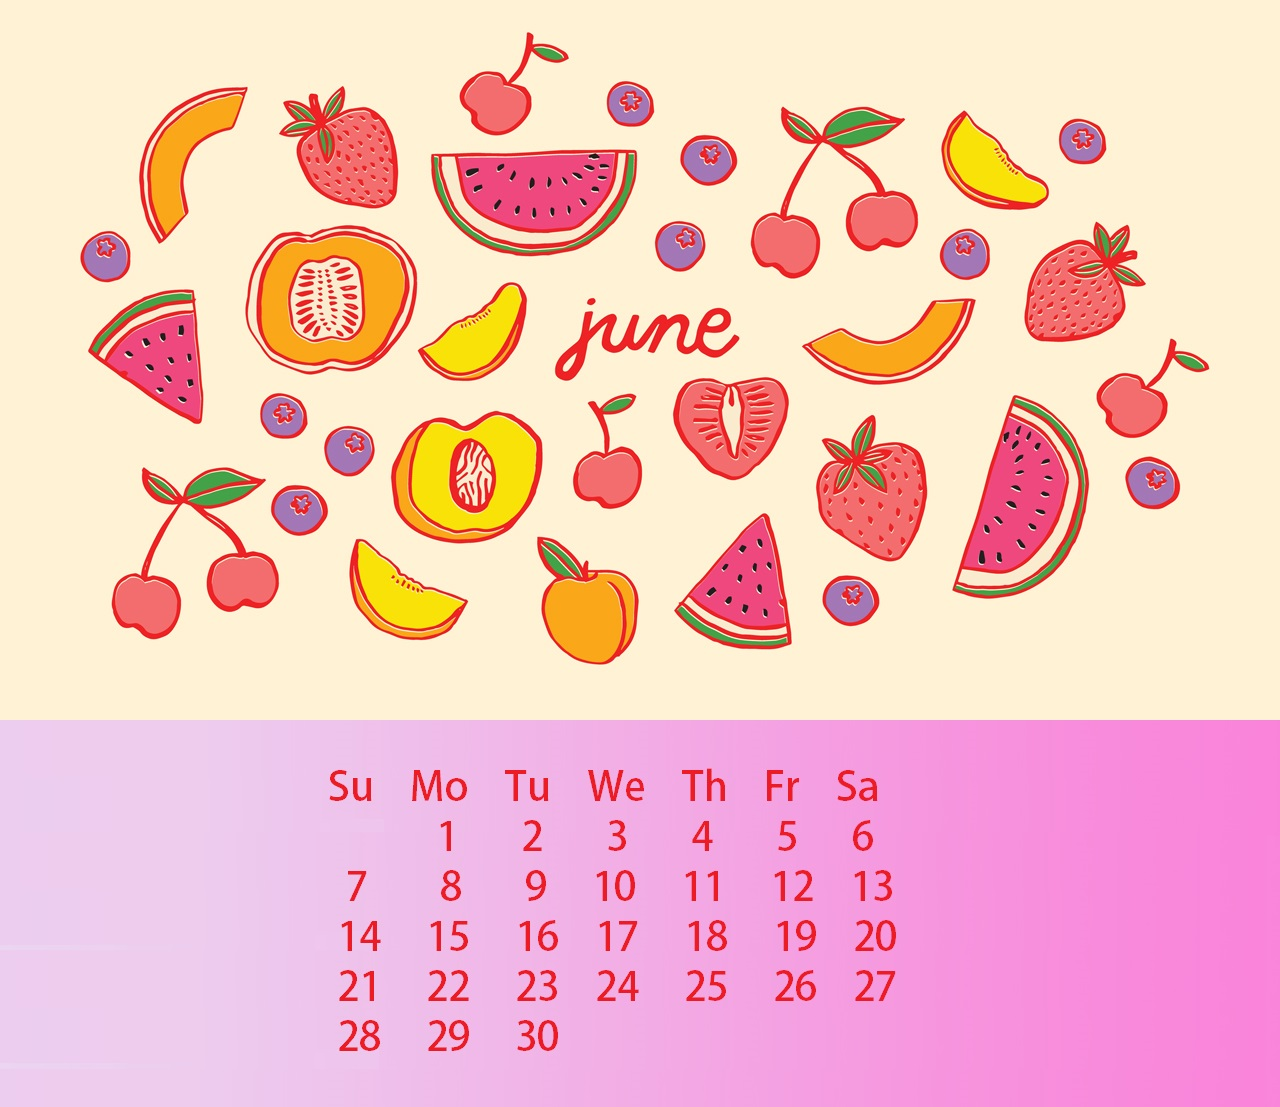 June 2020 Calendar Wallpapers Top Free June 2020 Calendar